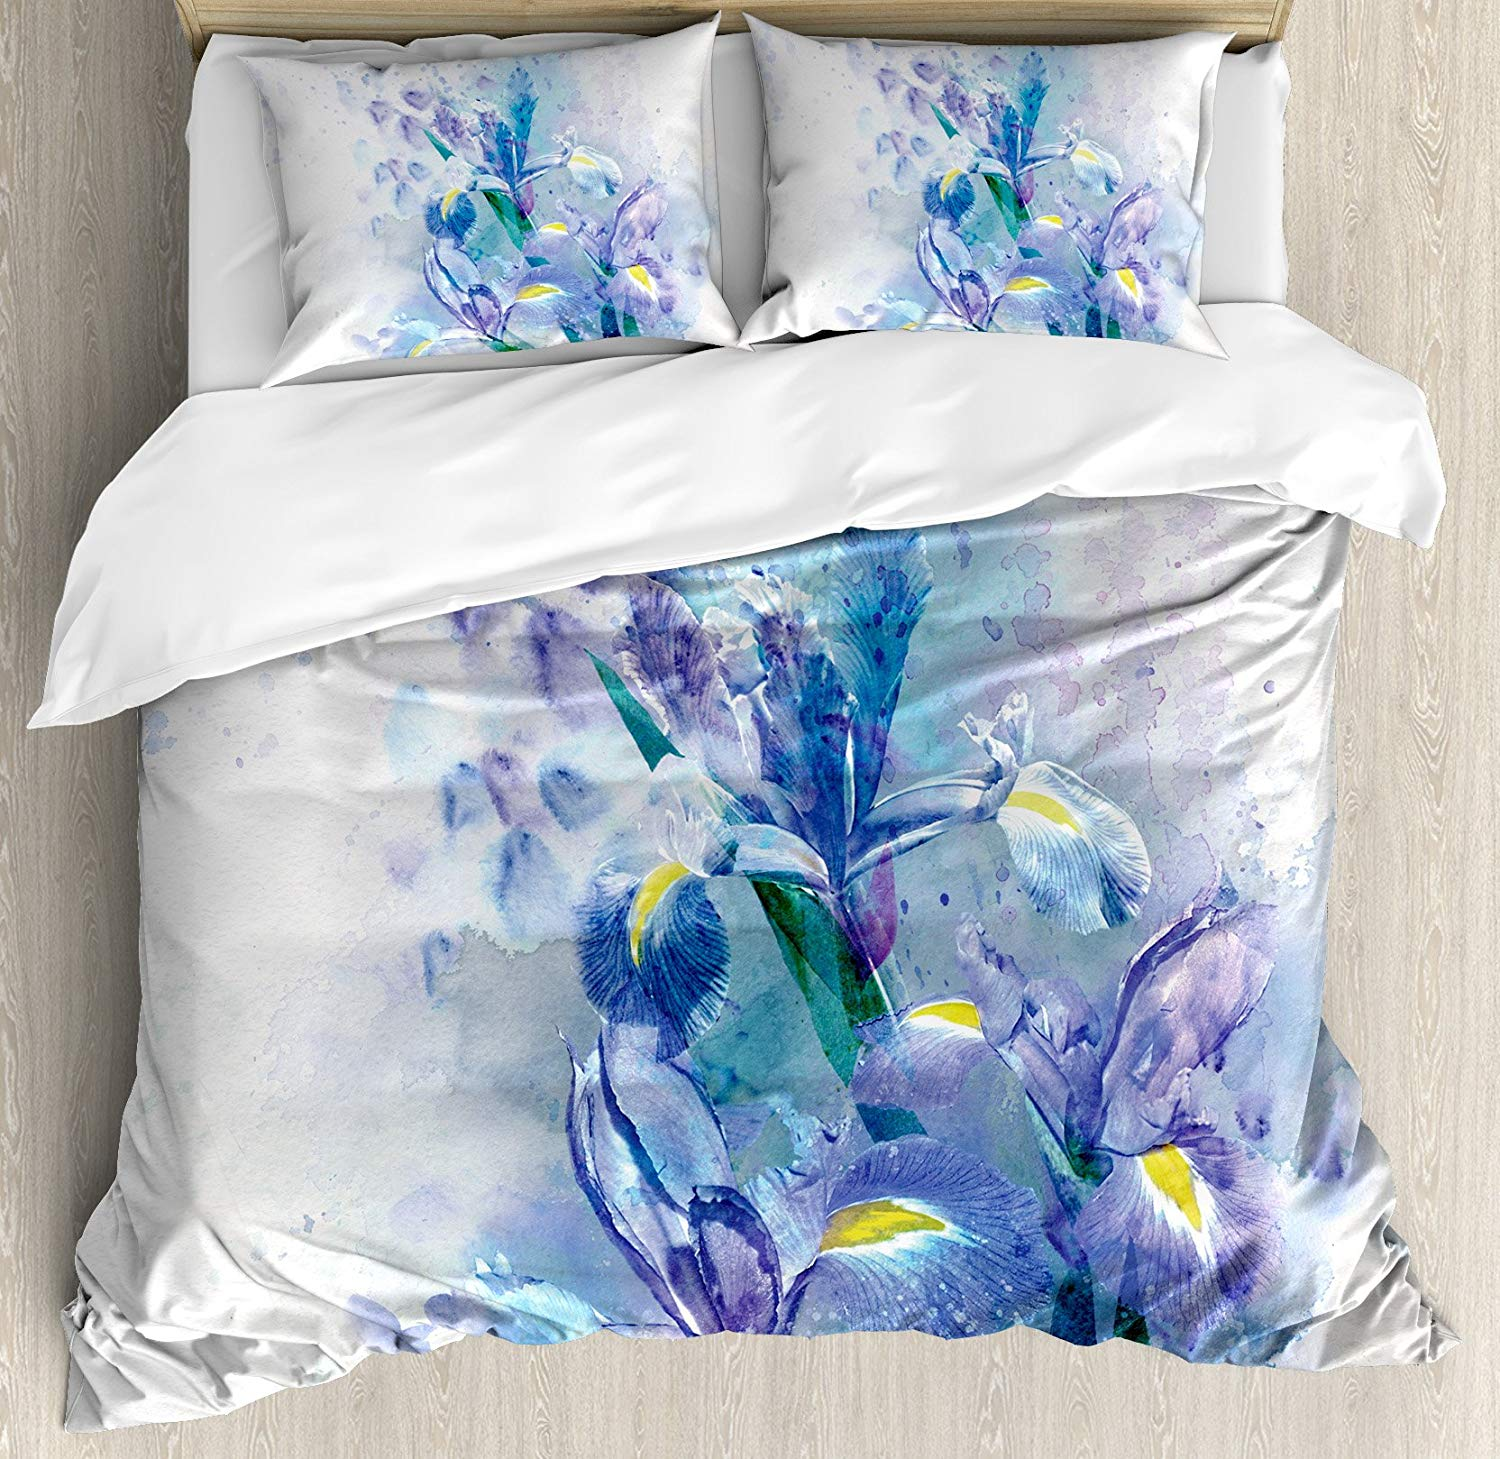 BIGHOUSES Duvet Cover Watercolor Flower Duvet Cover Set Floral Background with Pretty Irises in Fresh Color Nature Earth Spirit-in Bedding Sets from Home & Garden    1